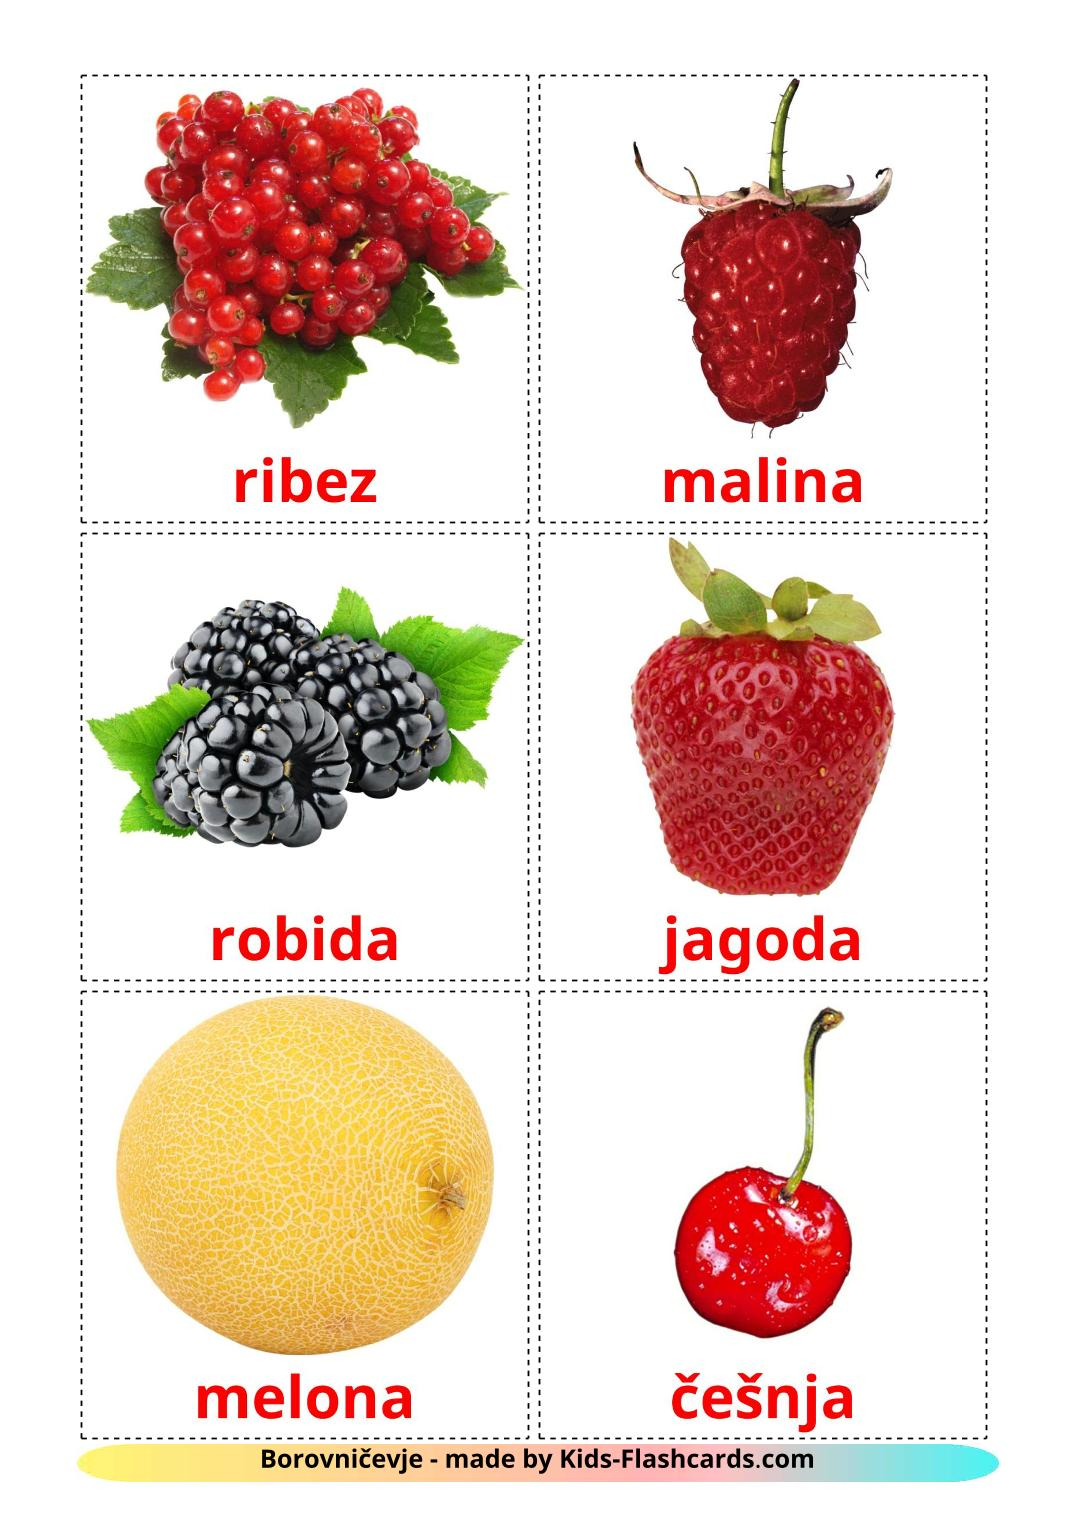 Berries - 11 Free Printable slovenian Flashcards